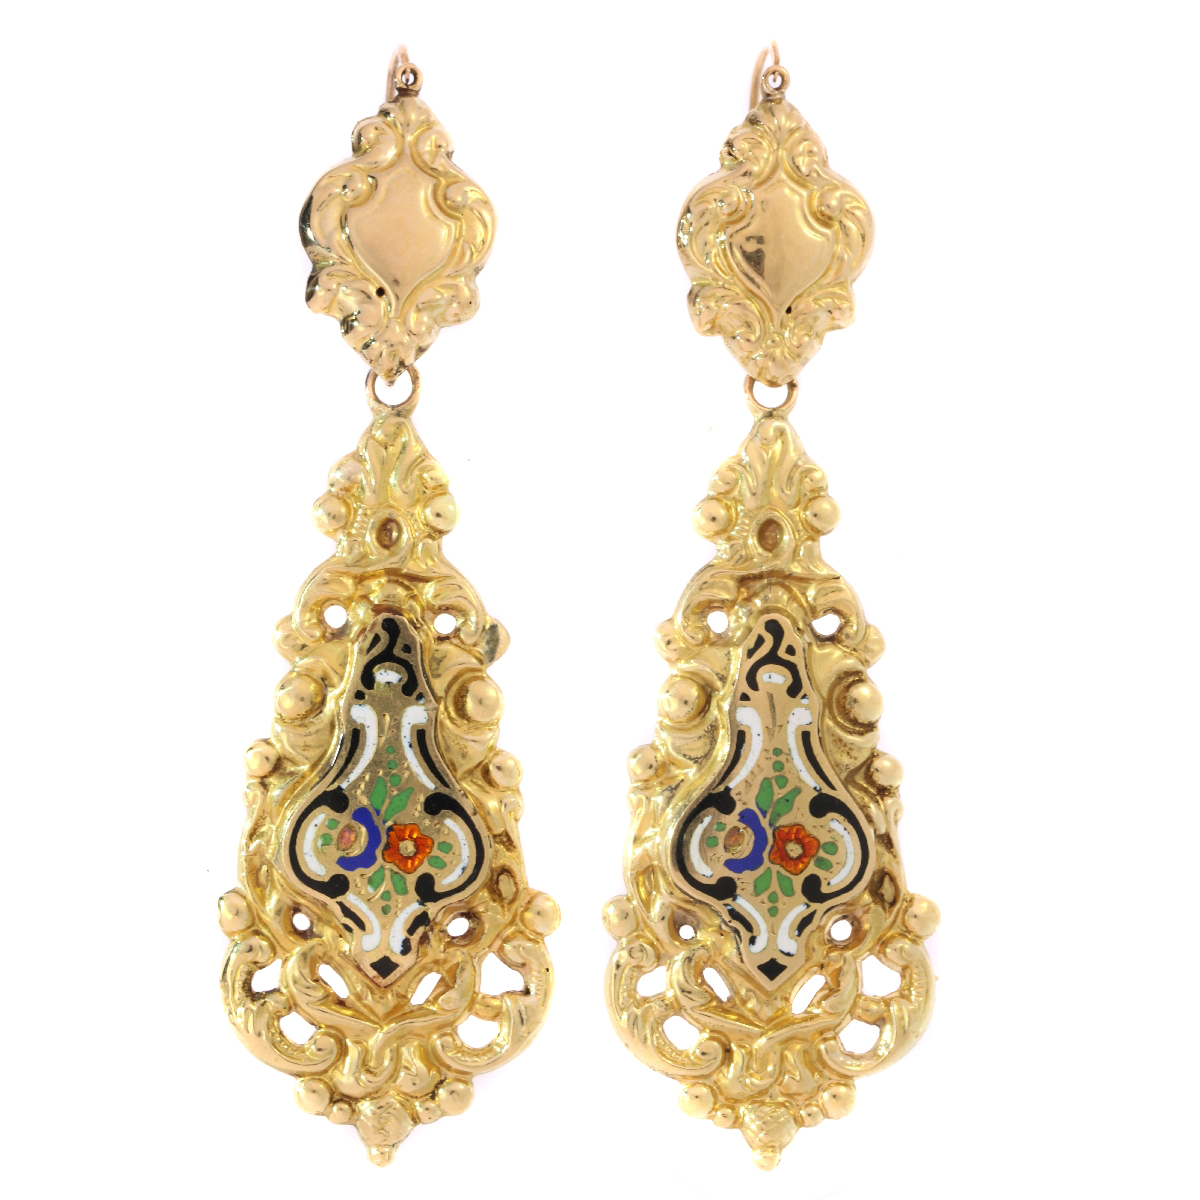 a58707843 Antique Victorian gold dangle earrings with enamel: Description by Adin  Antique Jewelry.